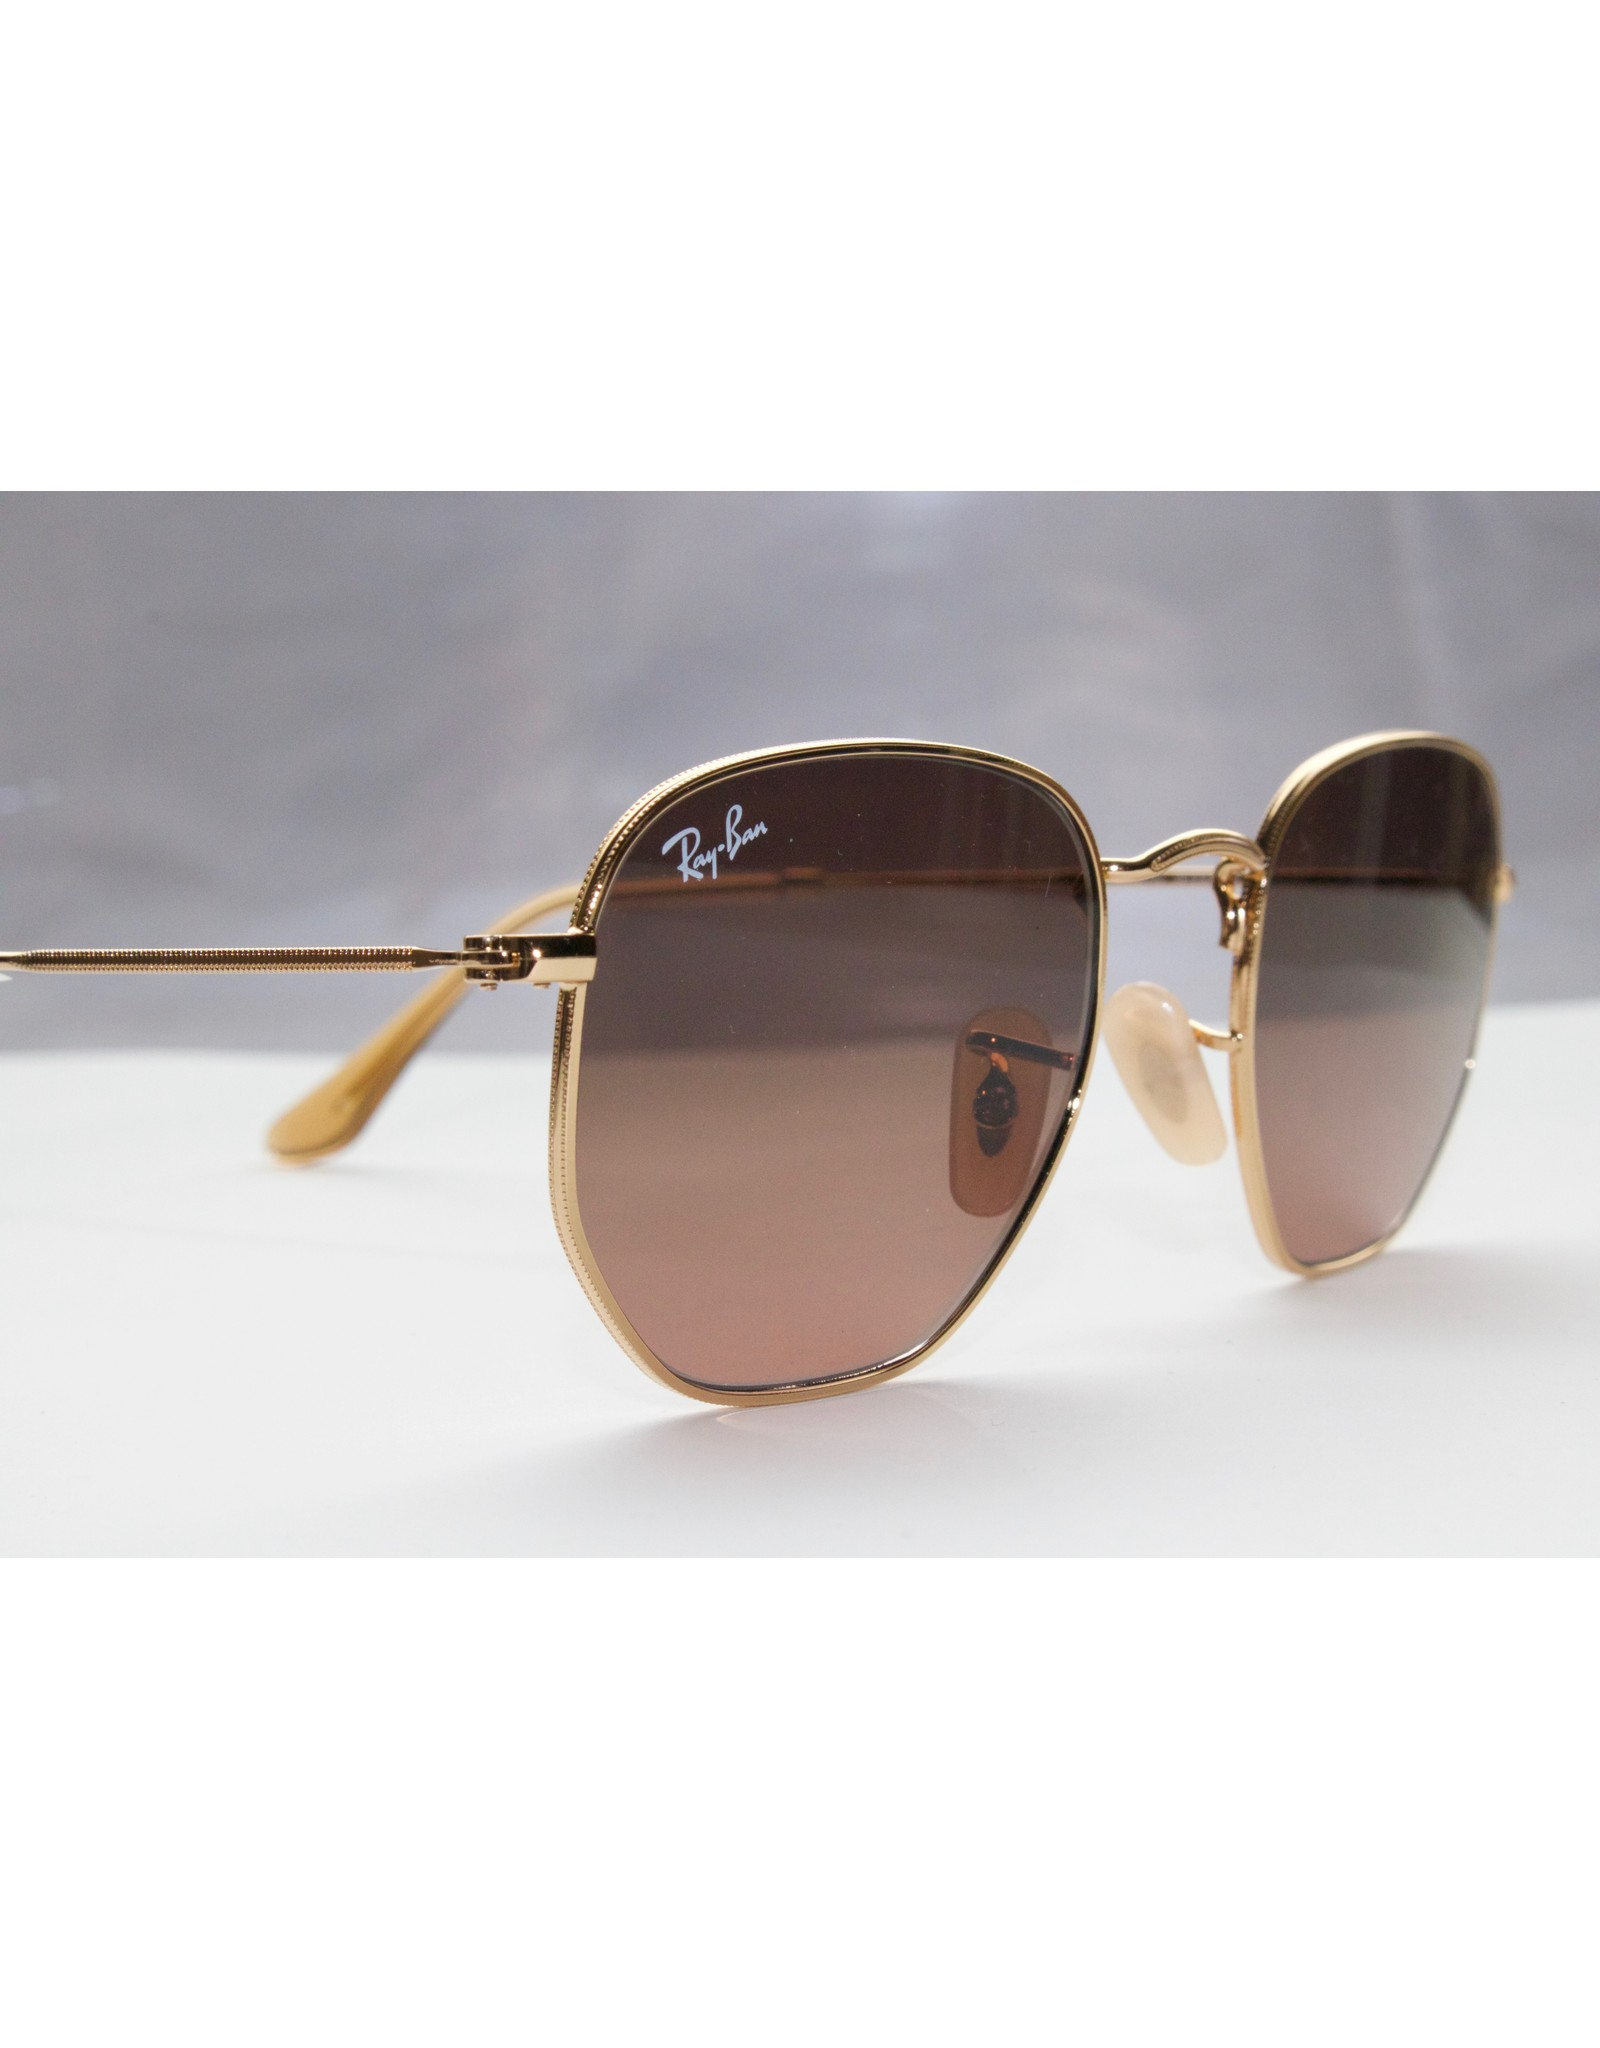 Ray-Ban RAY-BAN 3548-N HEXAGONAL FLAT LENSES